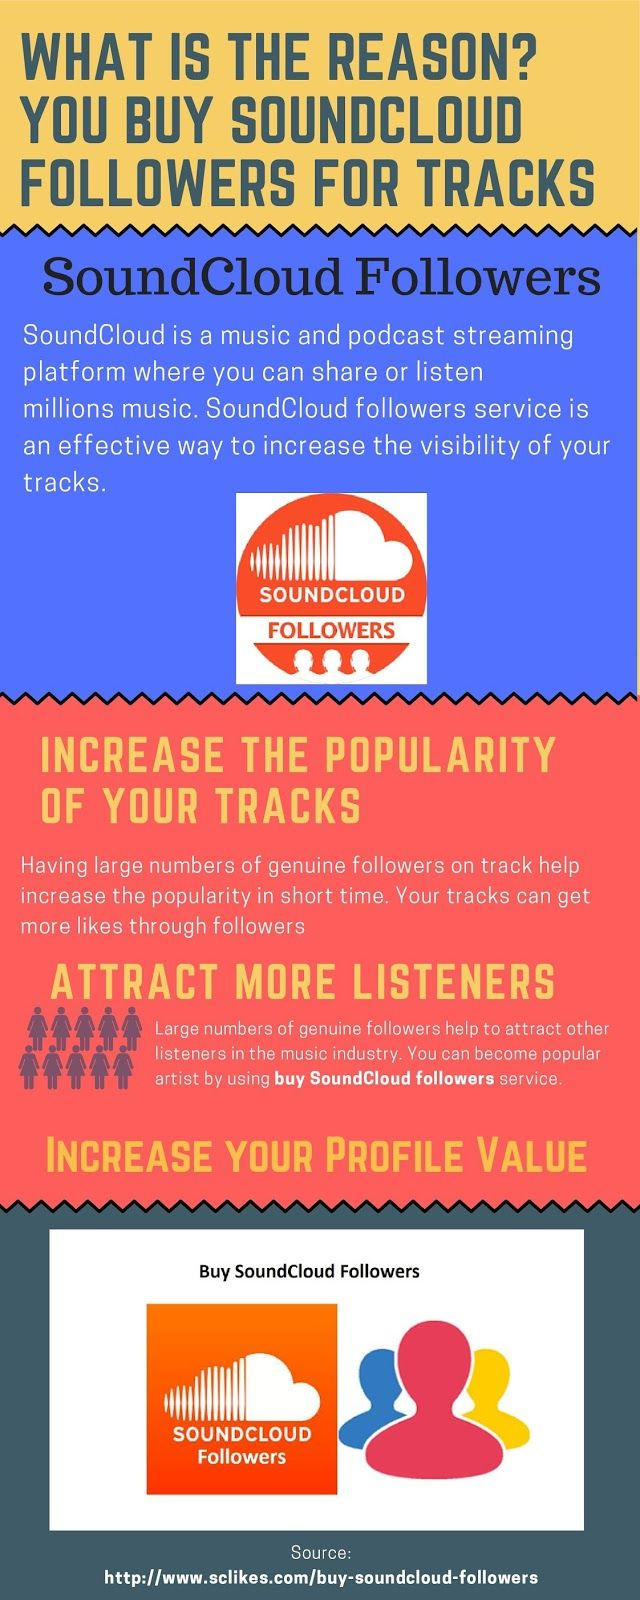 Pin by SClikes on Buy SoundCloud Followers to Attract More